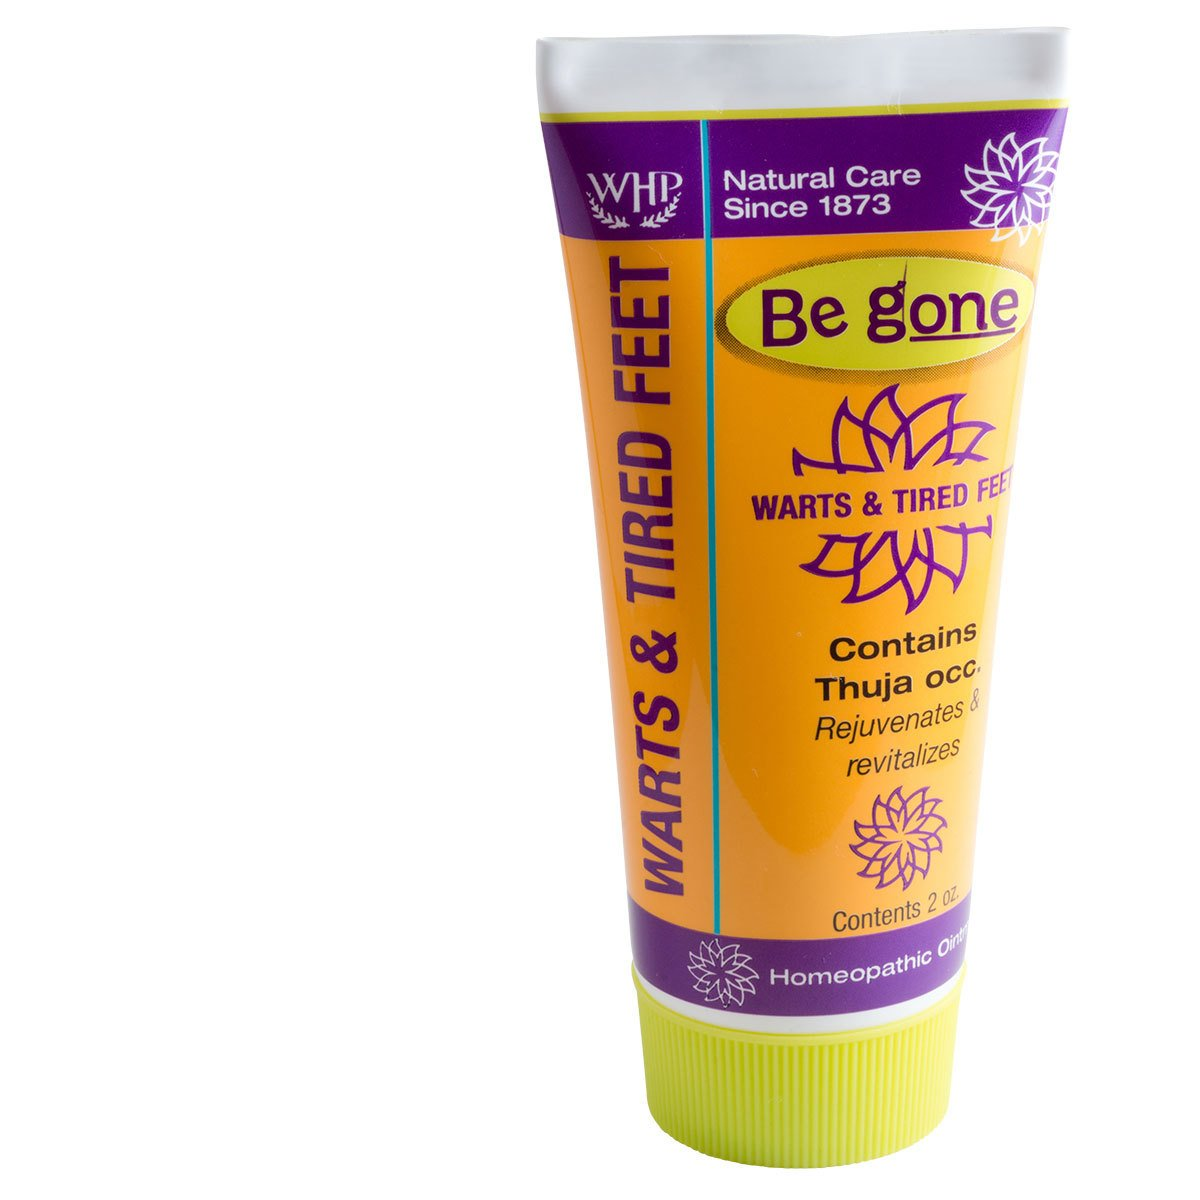 WHP Be gone™ Warts & Tired Feet Thuja Ointment for Healing of Skin Conditions, 2 Ounces. Topical Ointment for Warts, Calluses, Corns, Tired Feet and Sore Feet. Natural Active Ingredient.